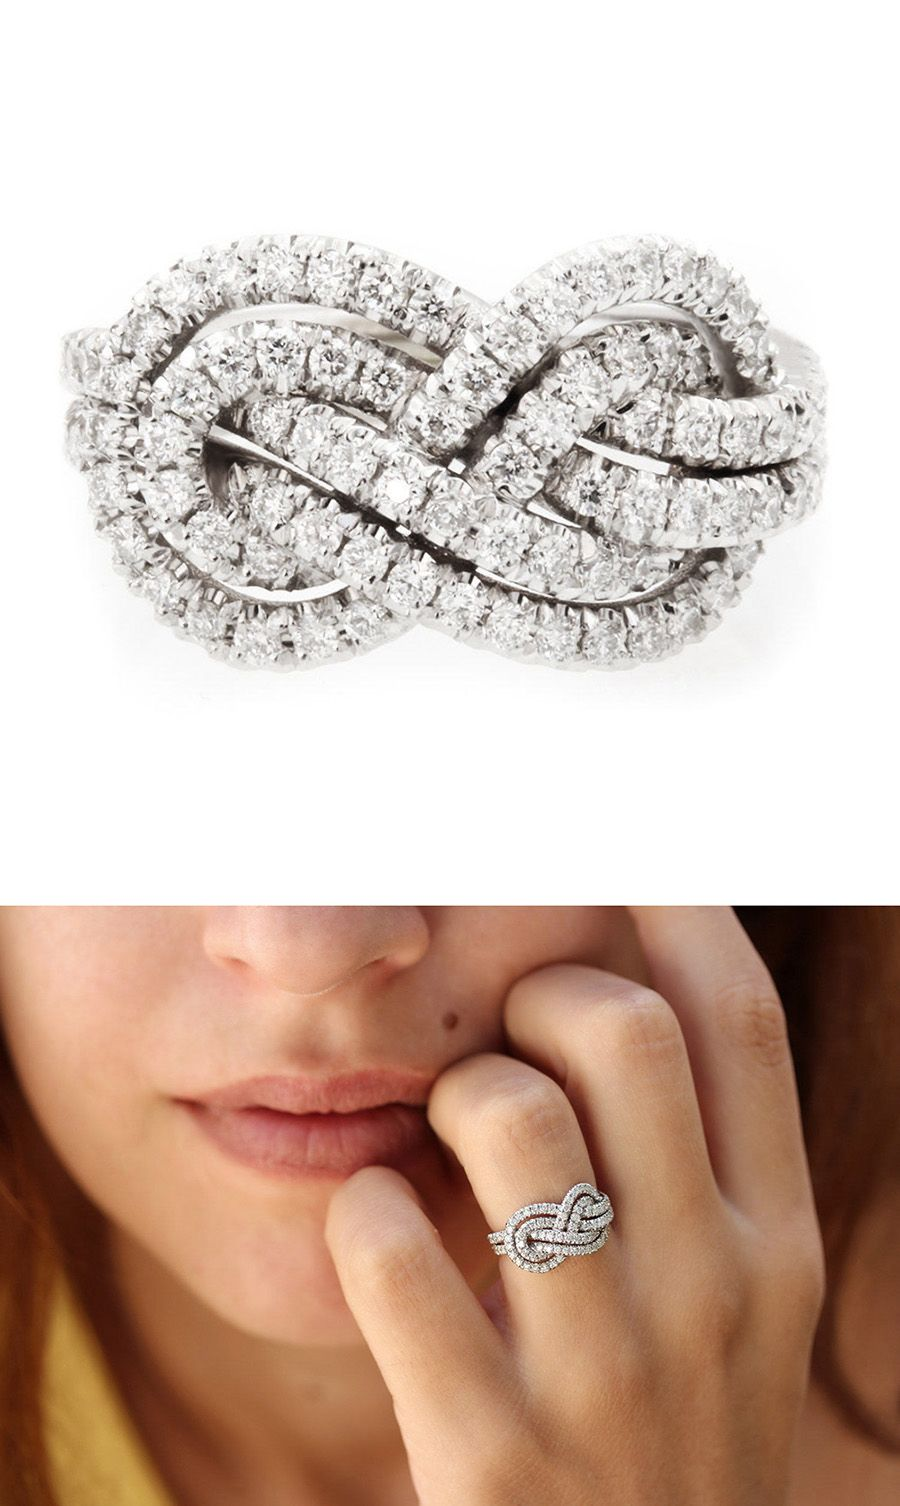 jewellery trusty women ydpzjgd size decor of rings full wedding for awesome diamond ladies engagement